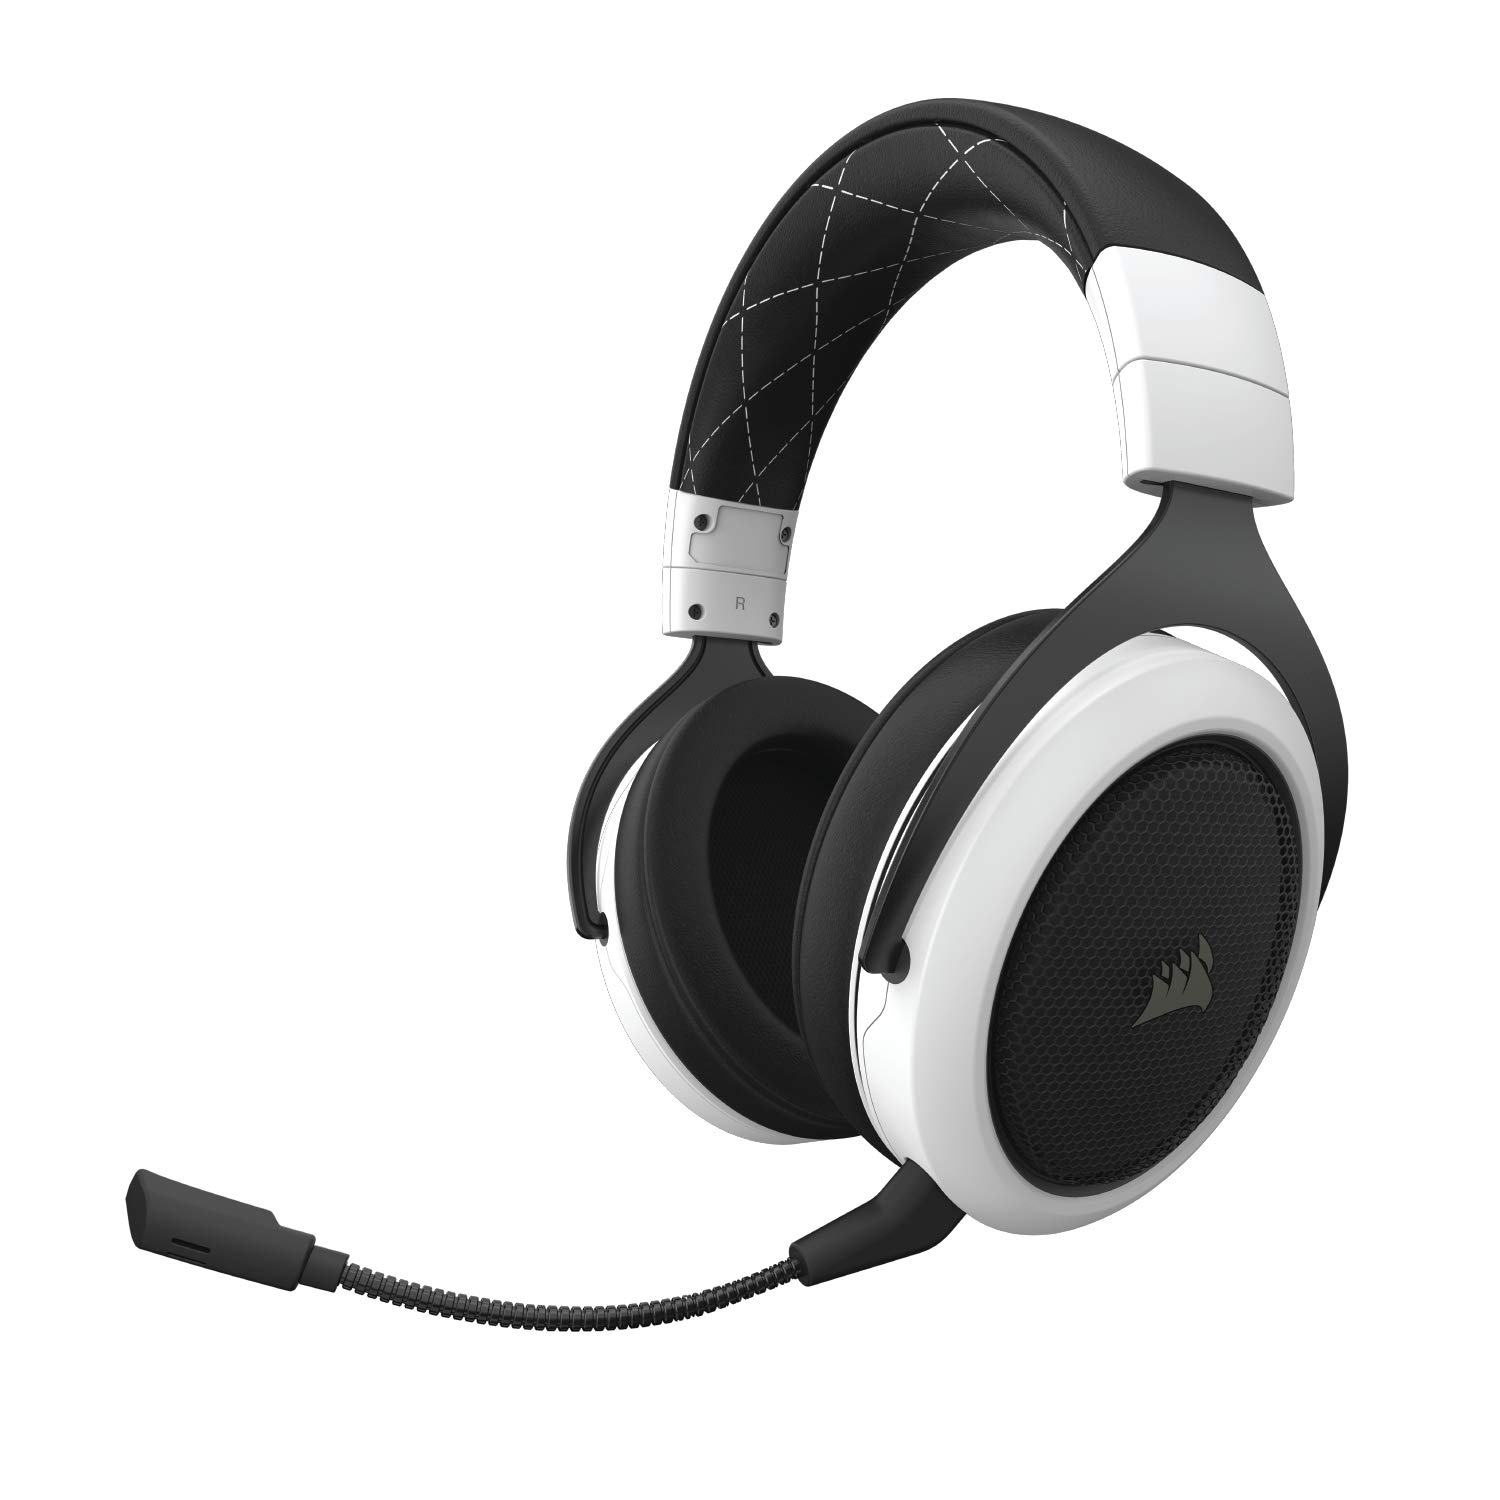 CORSAIR HS70 Wireless - 7 1 Surround Sound Gaming Headset - Discord  Certified Headphones - White